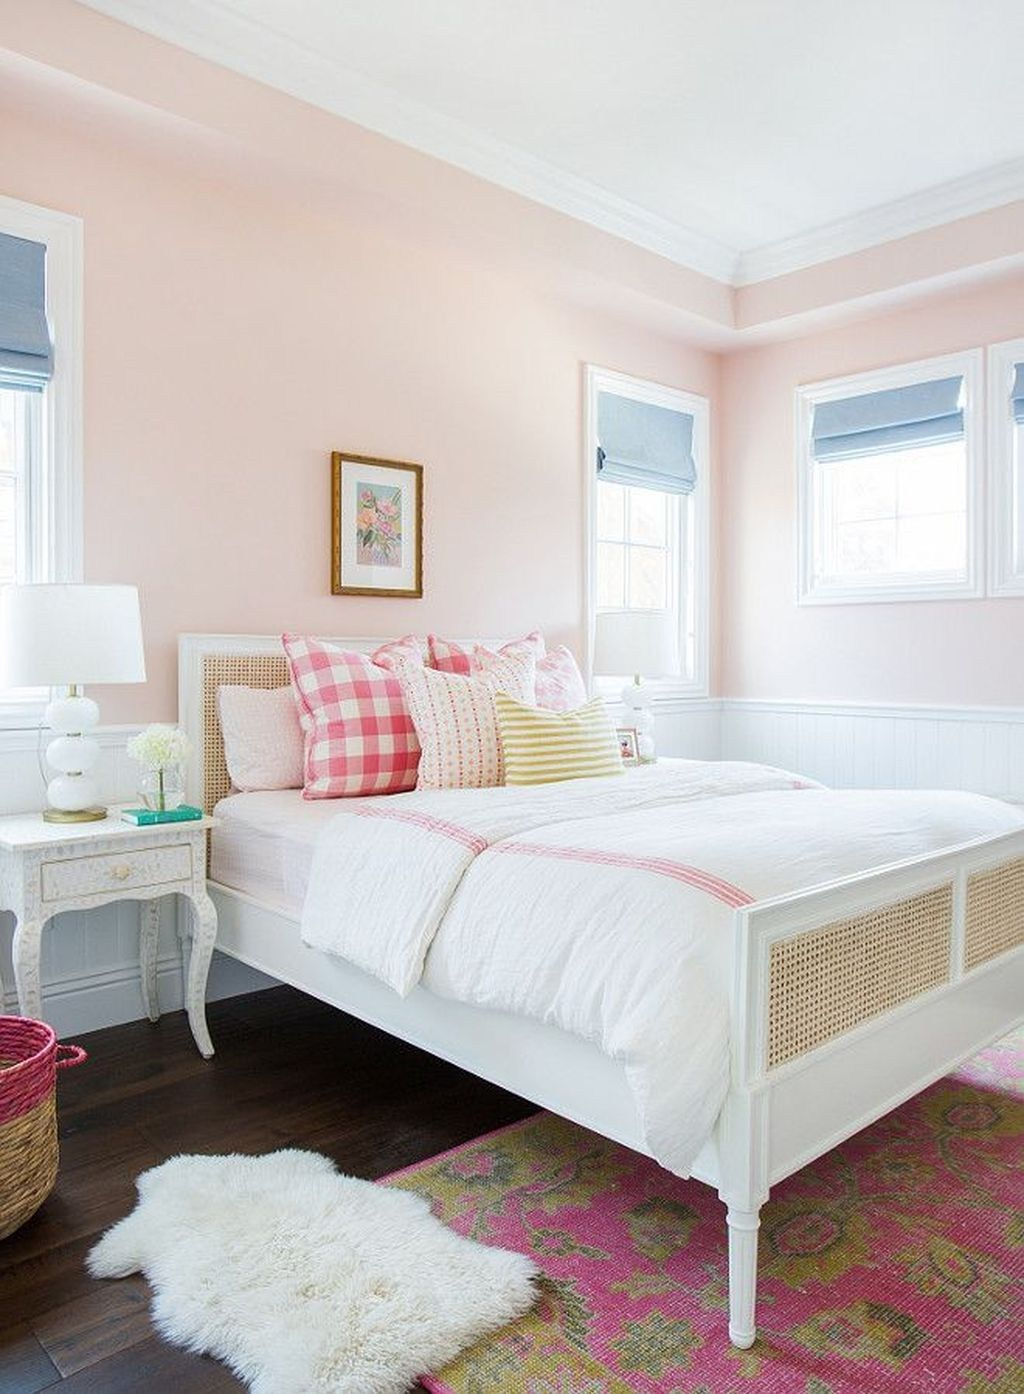 cute wall color bedroom design and decoration ideas 25 on wall color ideas id=45942